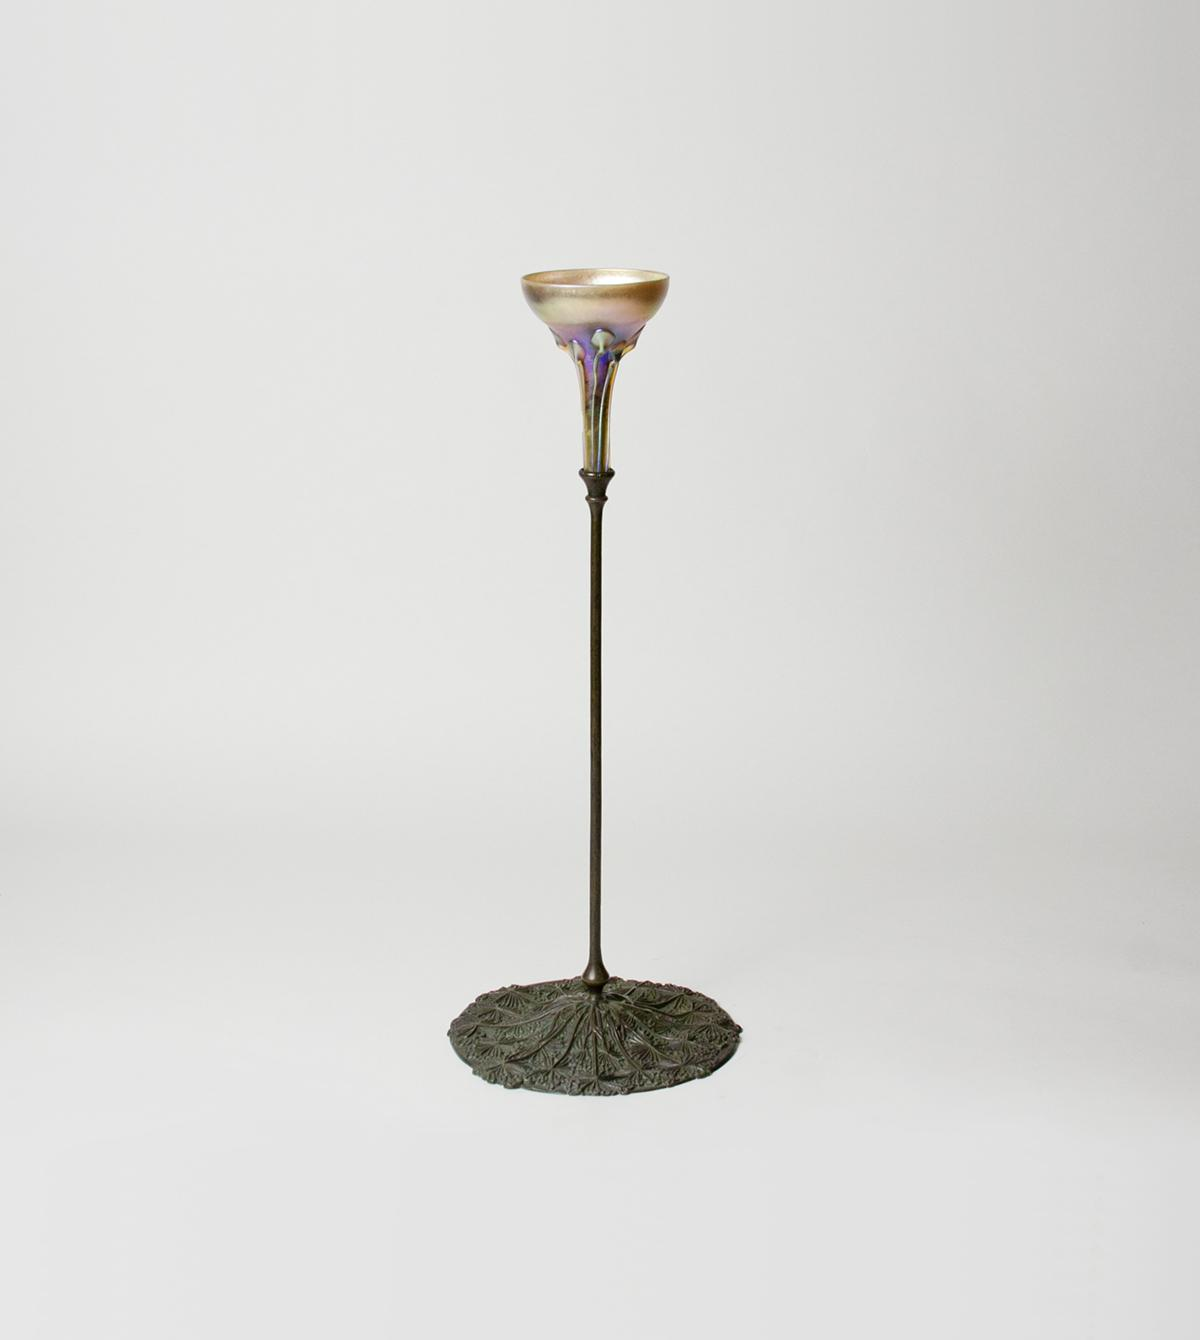 Tiffany Studios  Queen Anne's Lace Candlestick 1